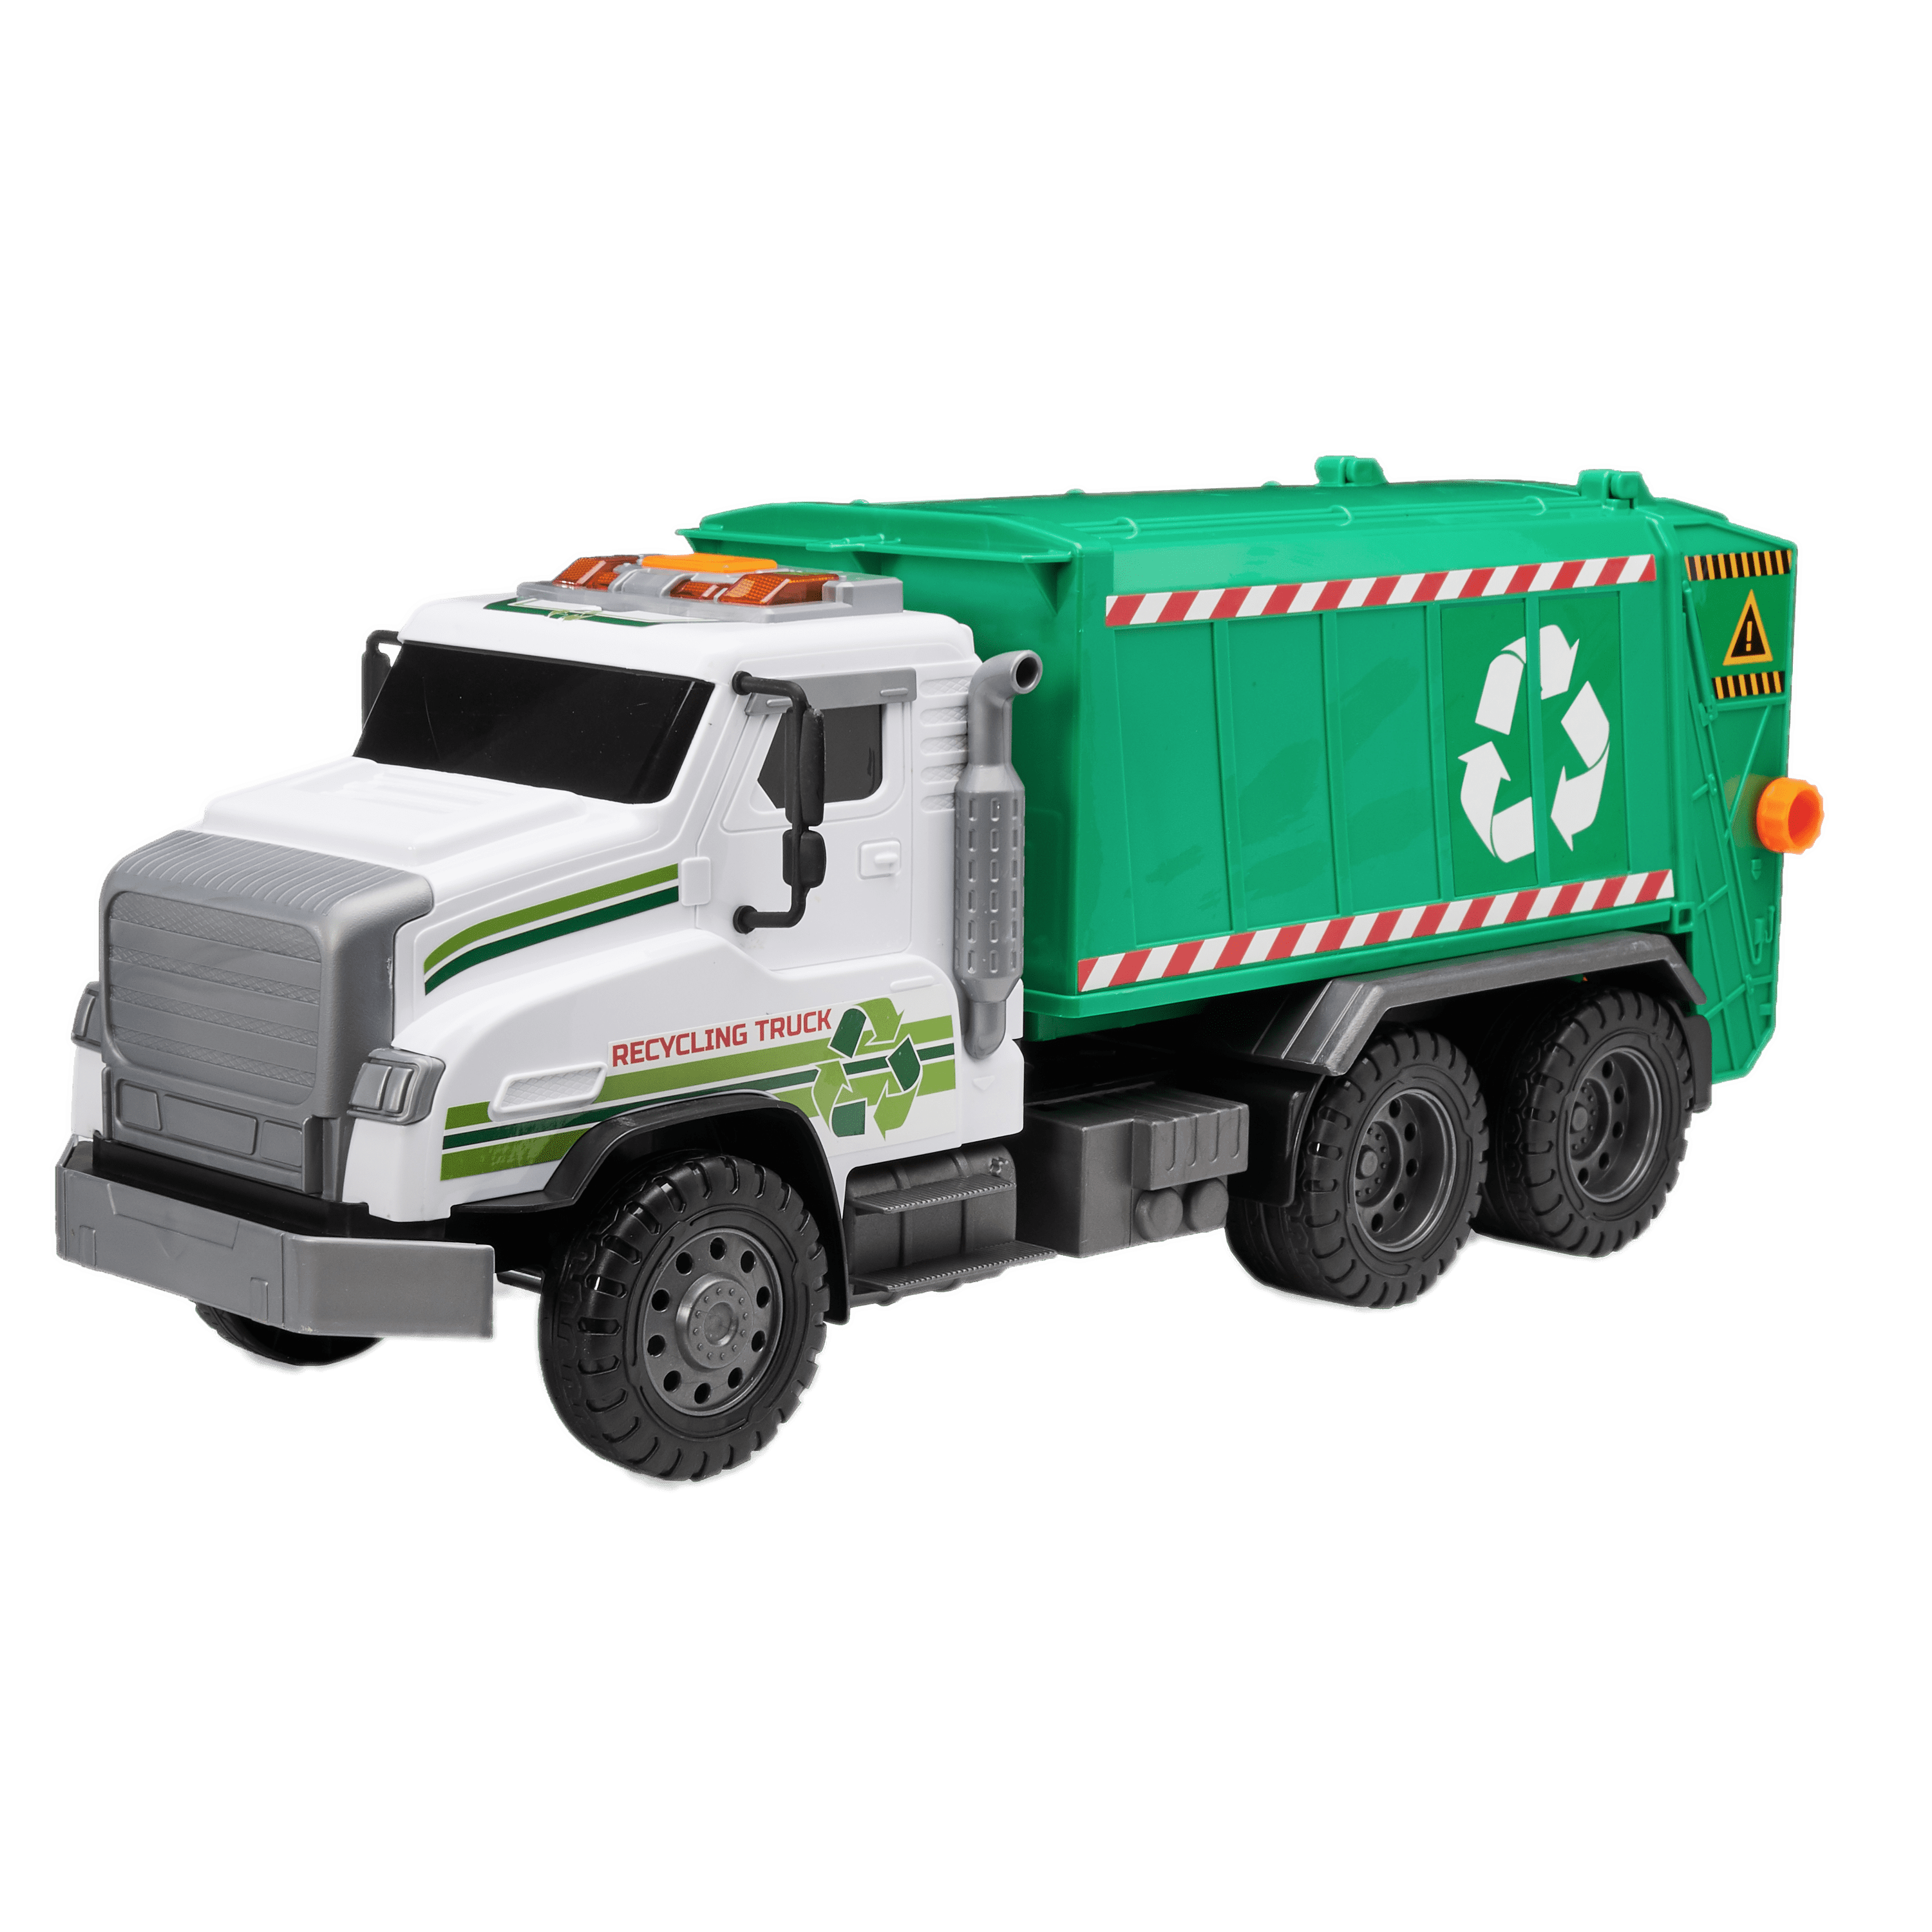 Recycling truck clipart clip art transparent Toy Recycling Truck transparent PNG - StickPNG clip art transparent